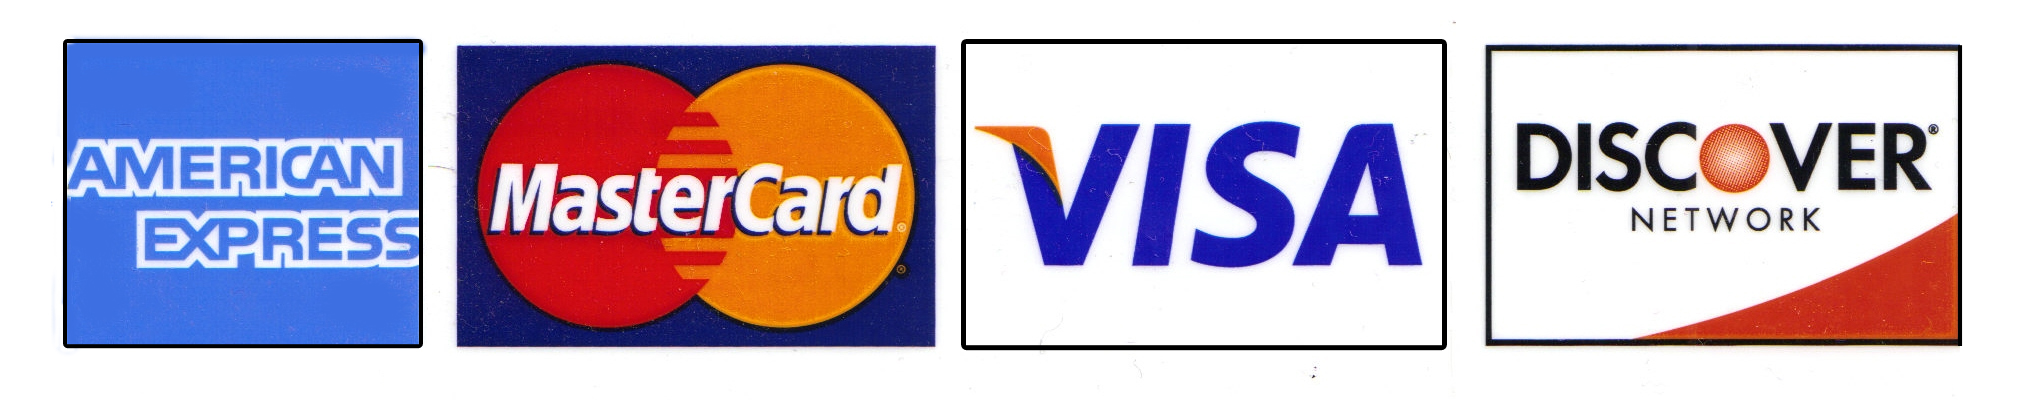 Credit card blanks with Logos.